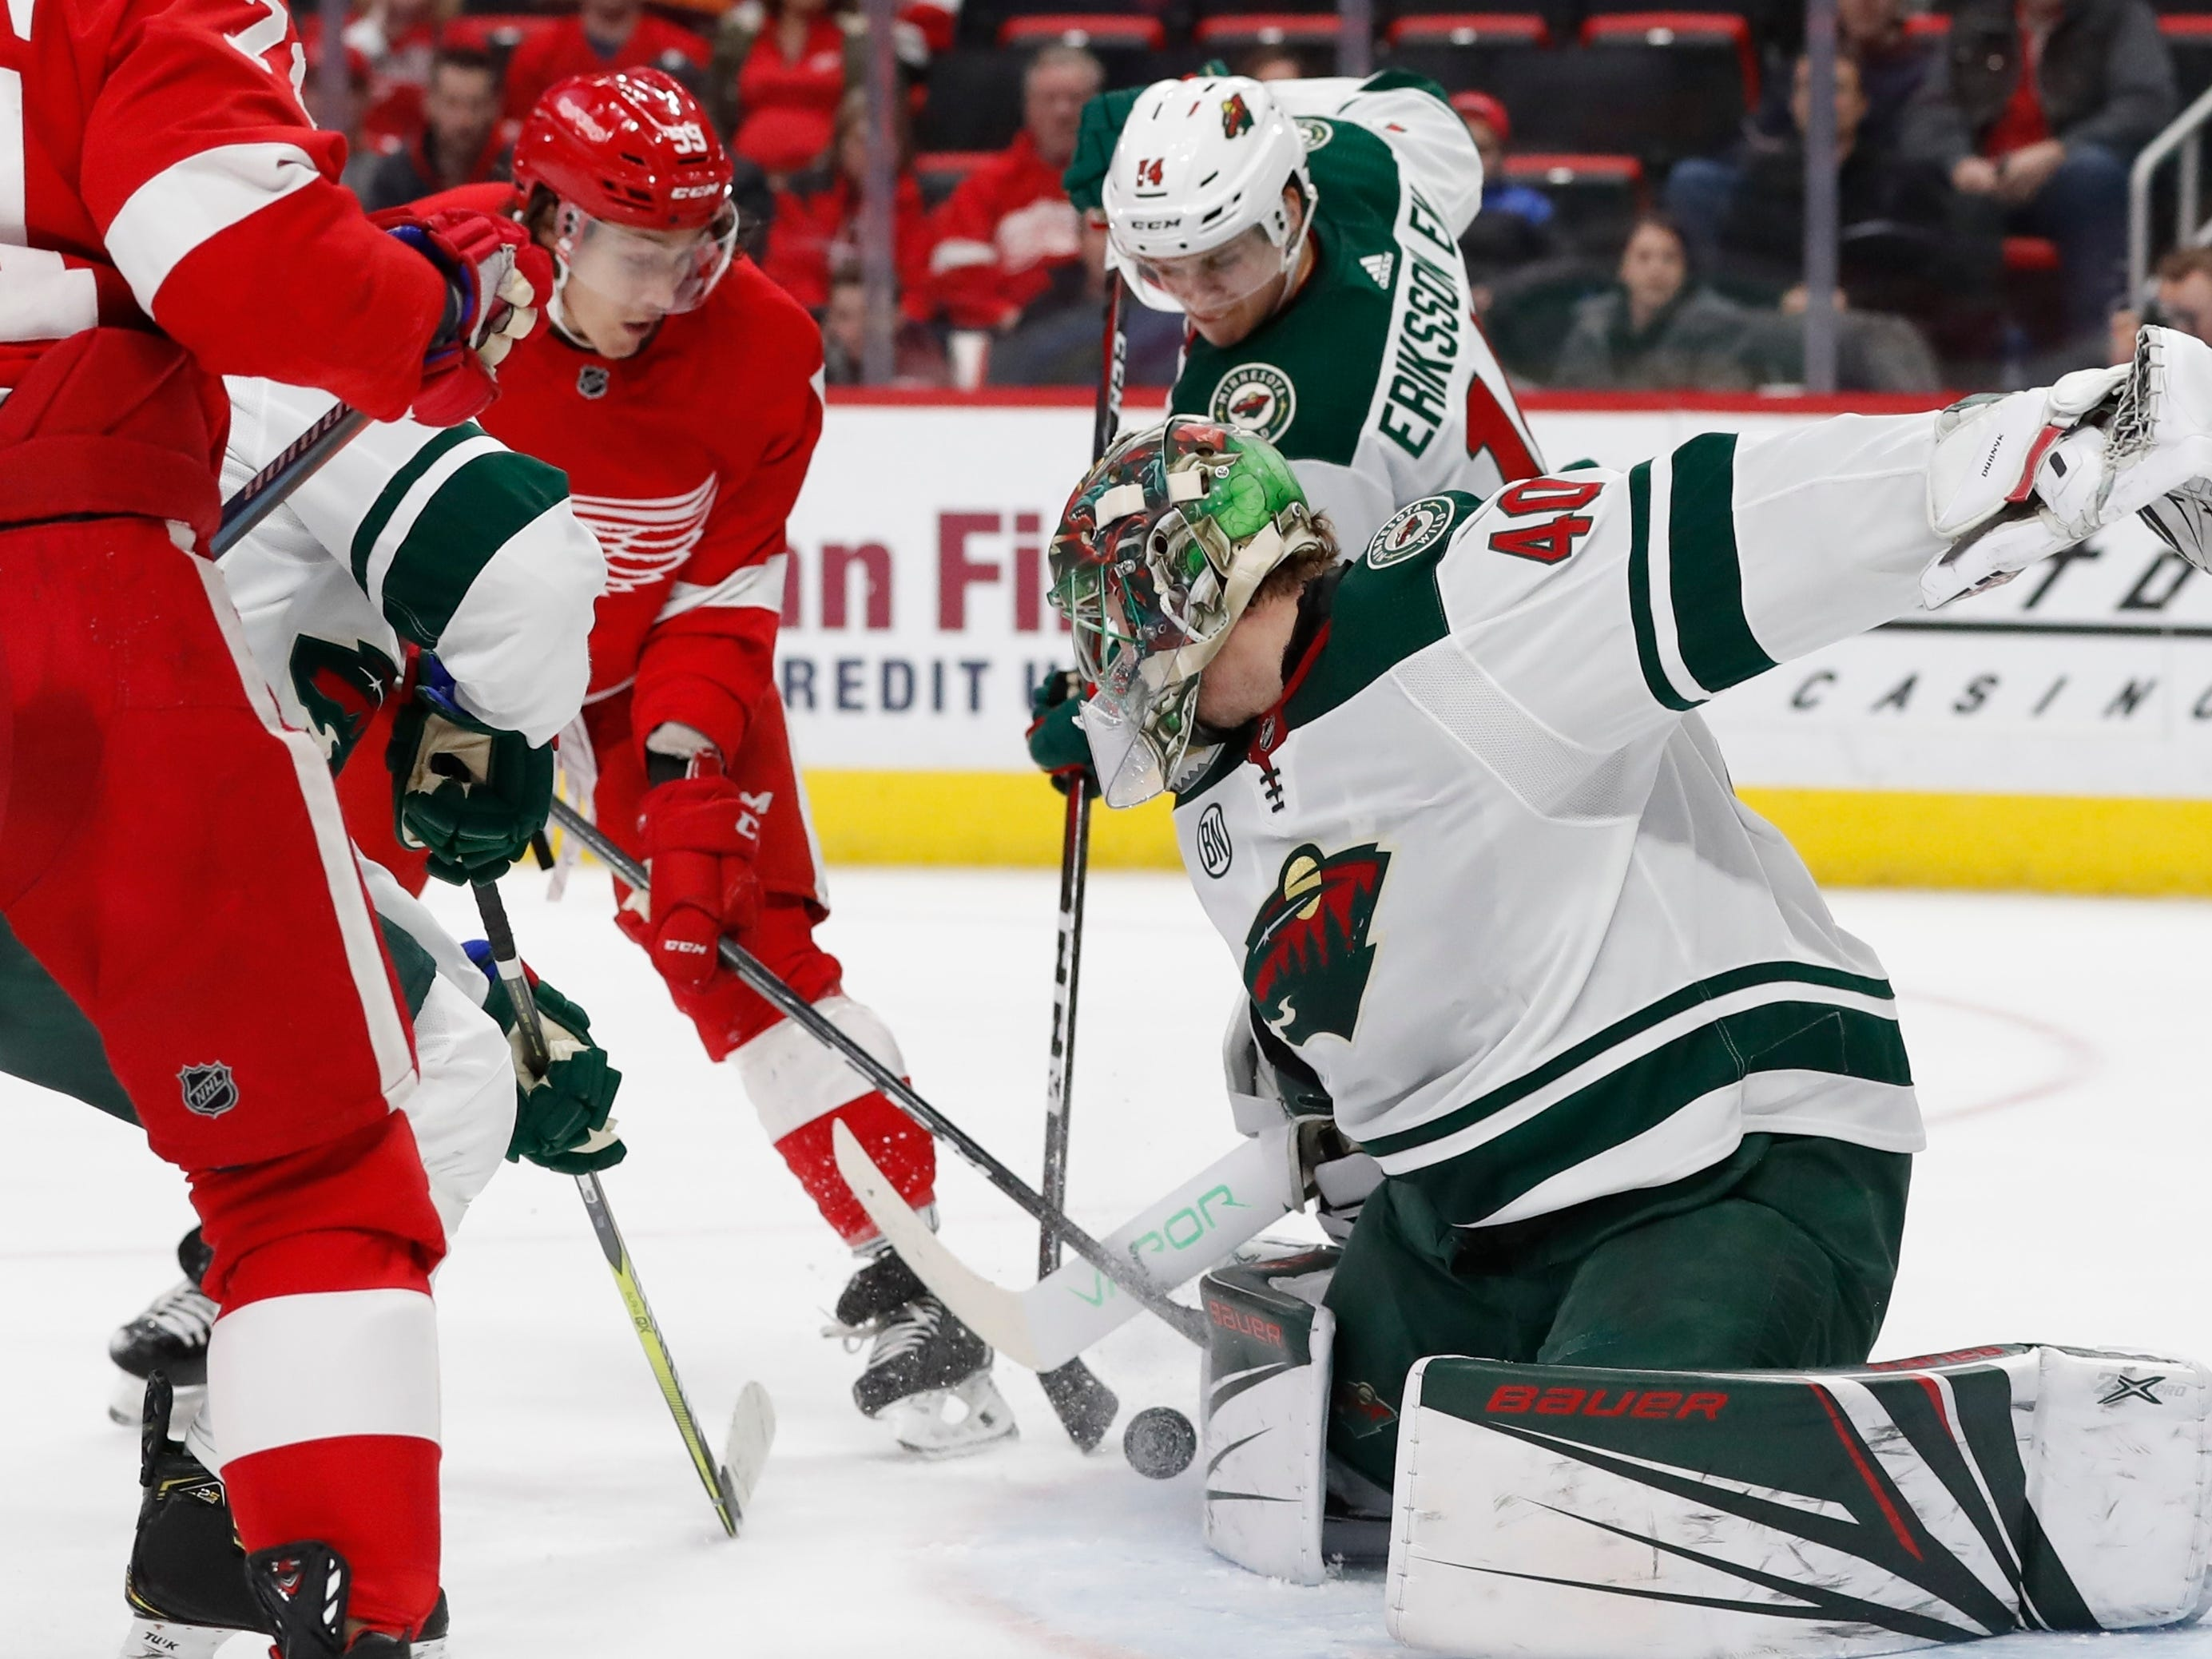 Minnesota Wild goaltender Devan Dubnyk (40) deflects a shot by Detroit Red Wings left wing Tyler Bertuzzi (59) during the first period of an NHL hockey game Friday, Feb. 22, 2019, in Detroit.